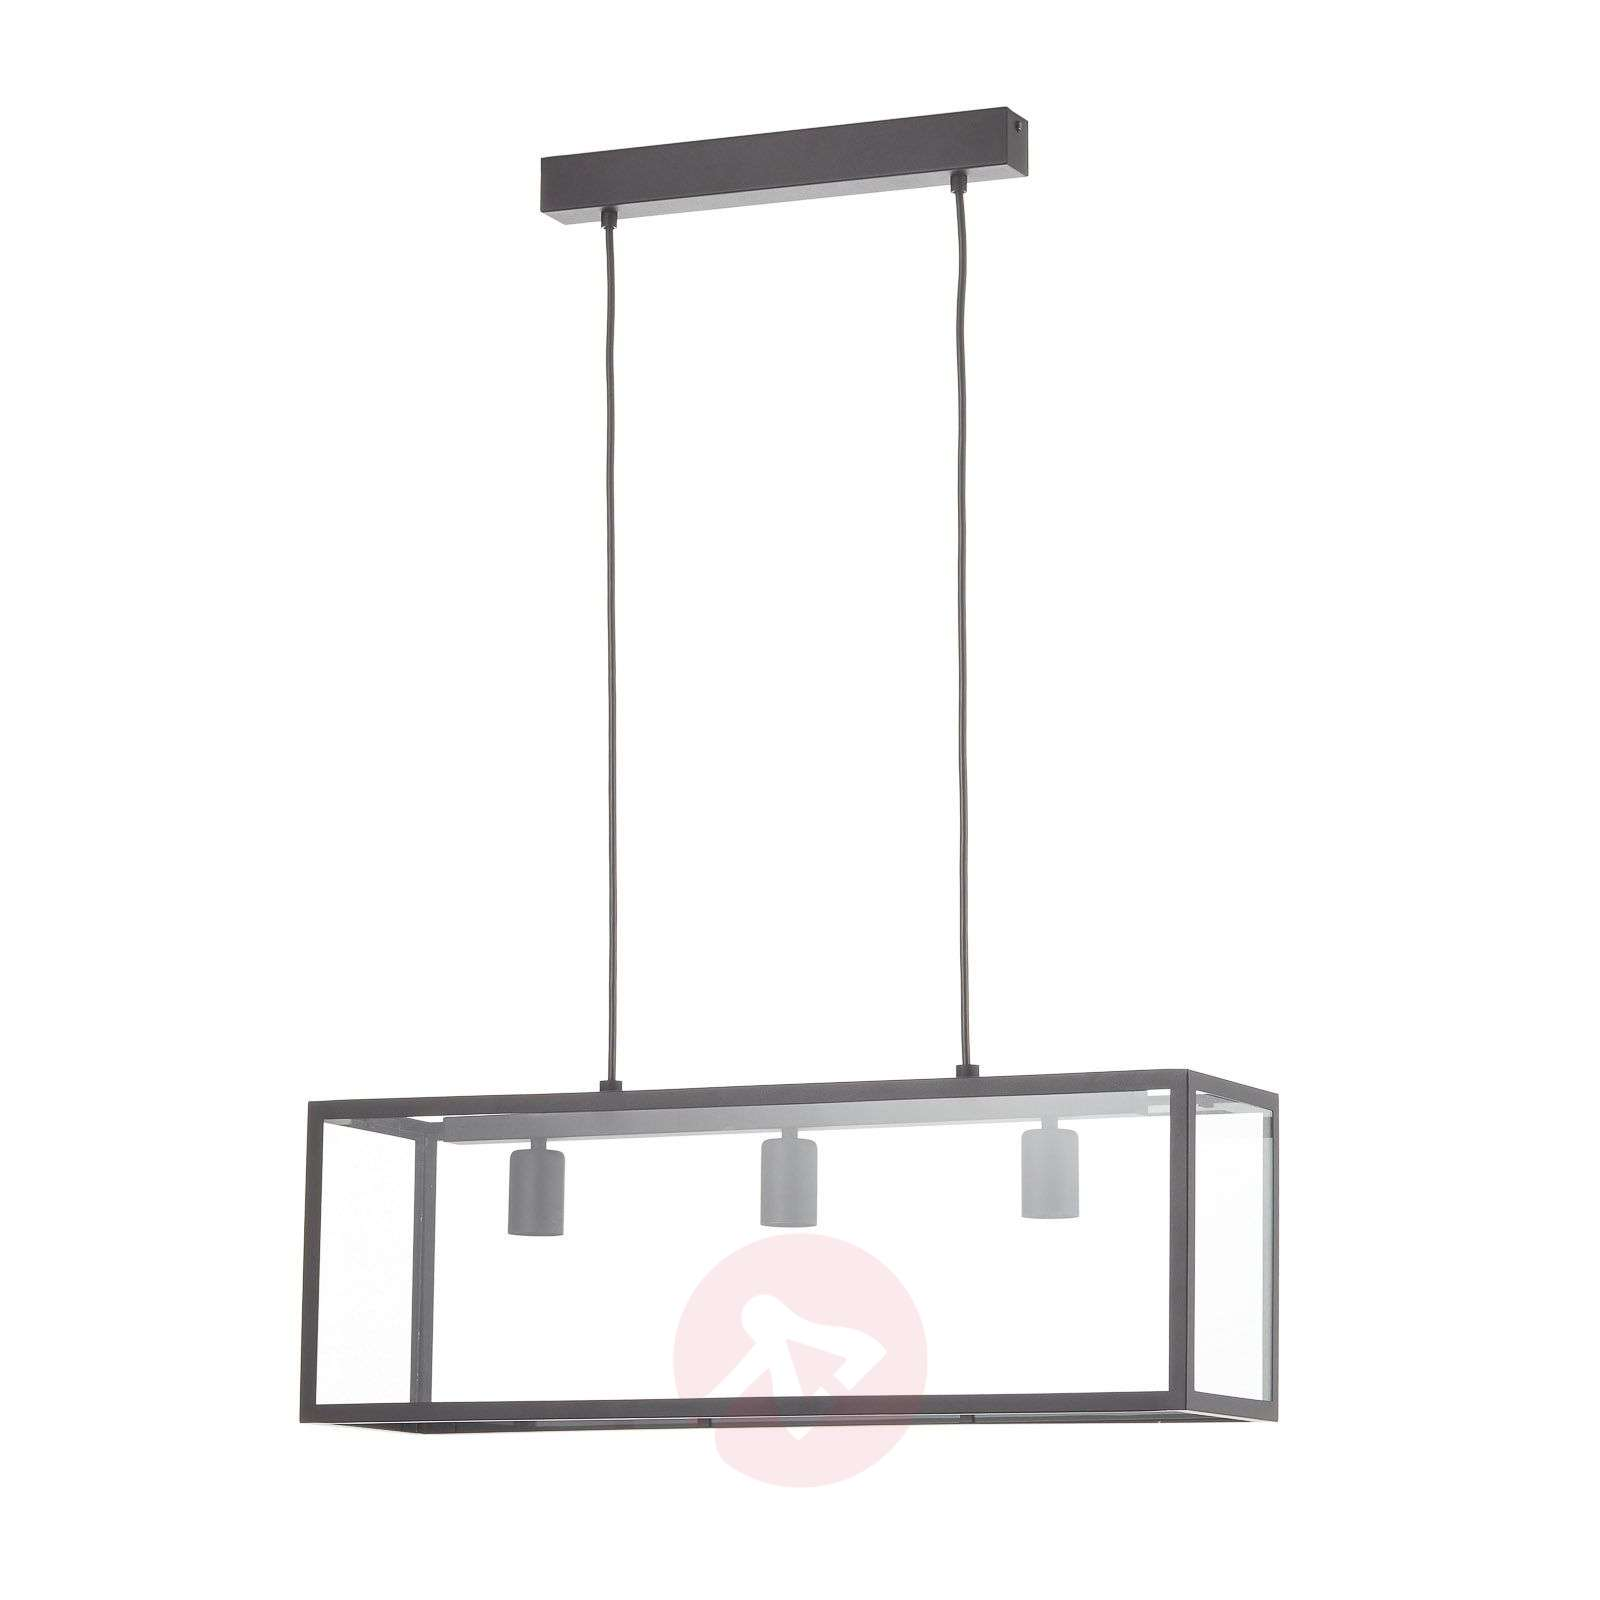 Charterhouse a vintage-style hanging light-3031780-01